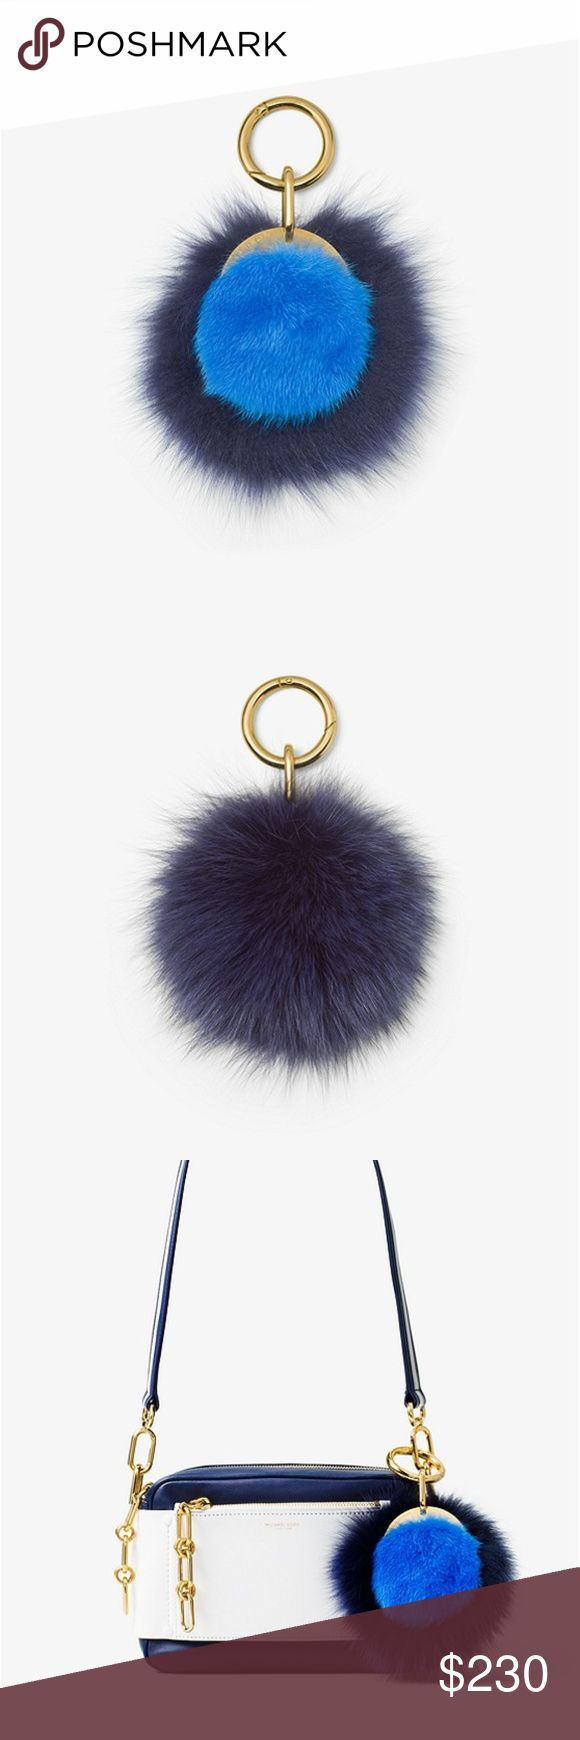 """NWT MICHAEL KORS Mink Fur Charm Crafted from luxe mink fur, this eye-catching charm will add a dose of rich texture to your everyday accessories. Clip it on to the season's neutral shoulder bags, or better yet, gift it to a friend.  DETAILS -100% Dyed Mink Fur  -Palladium Plated Hardware  -Dimensions: 5""""W x 5.5""""L x 3""""H  -Fur Origin: USA Michael Kors Jewelry"""